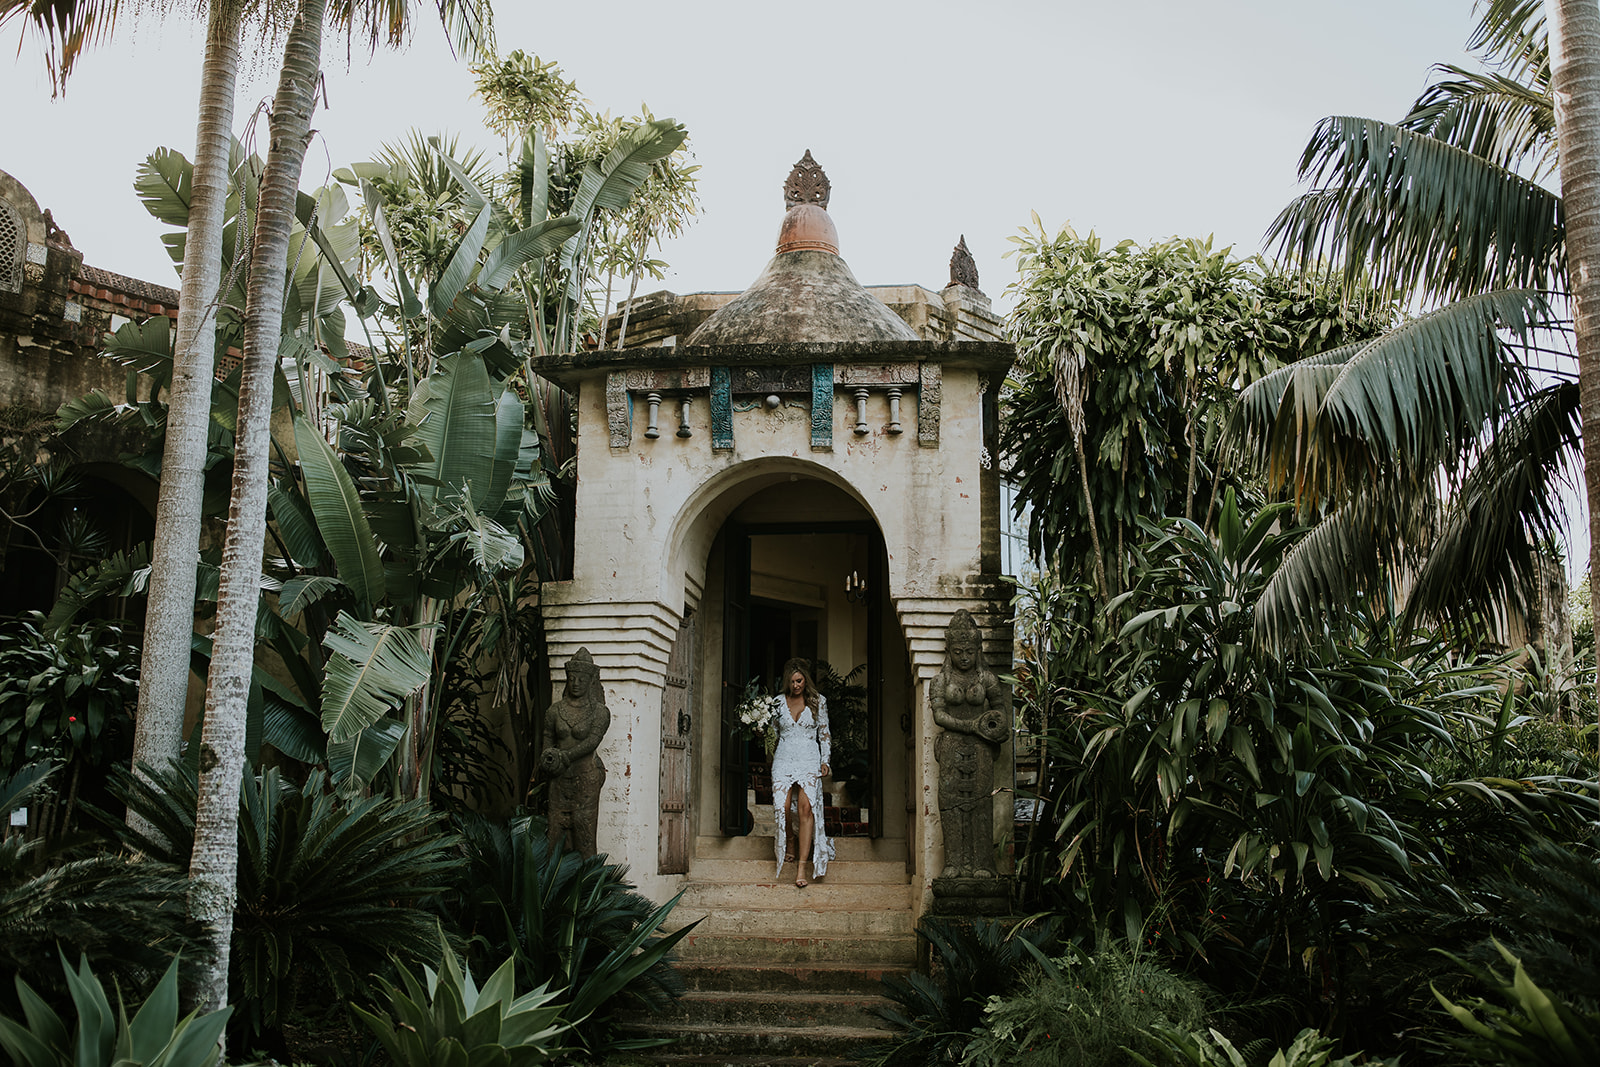 Bride walking down stairs of rustic villa. Green jungle surrounds building.